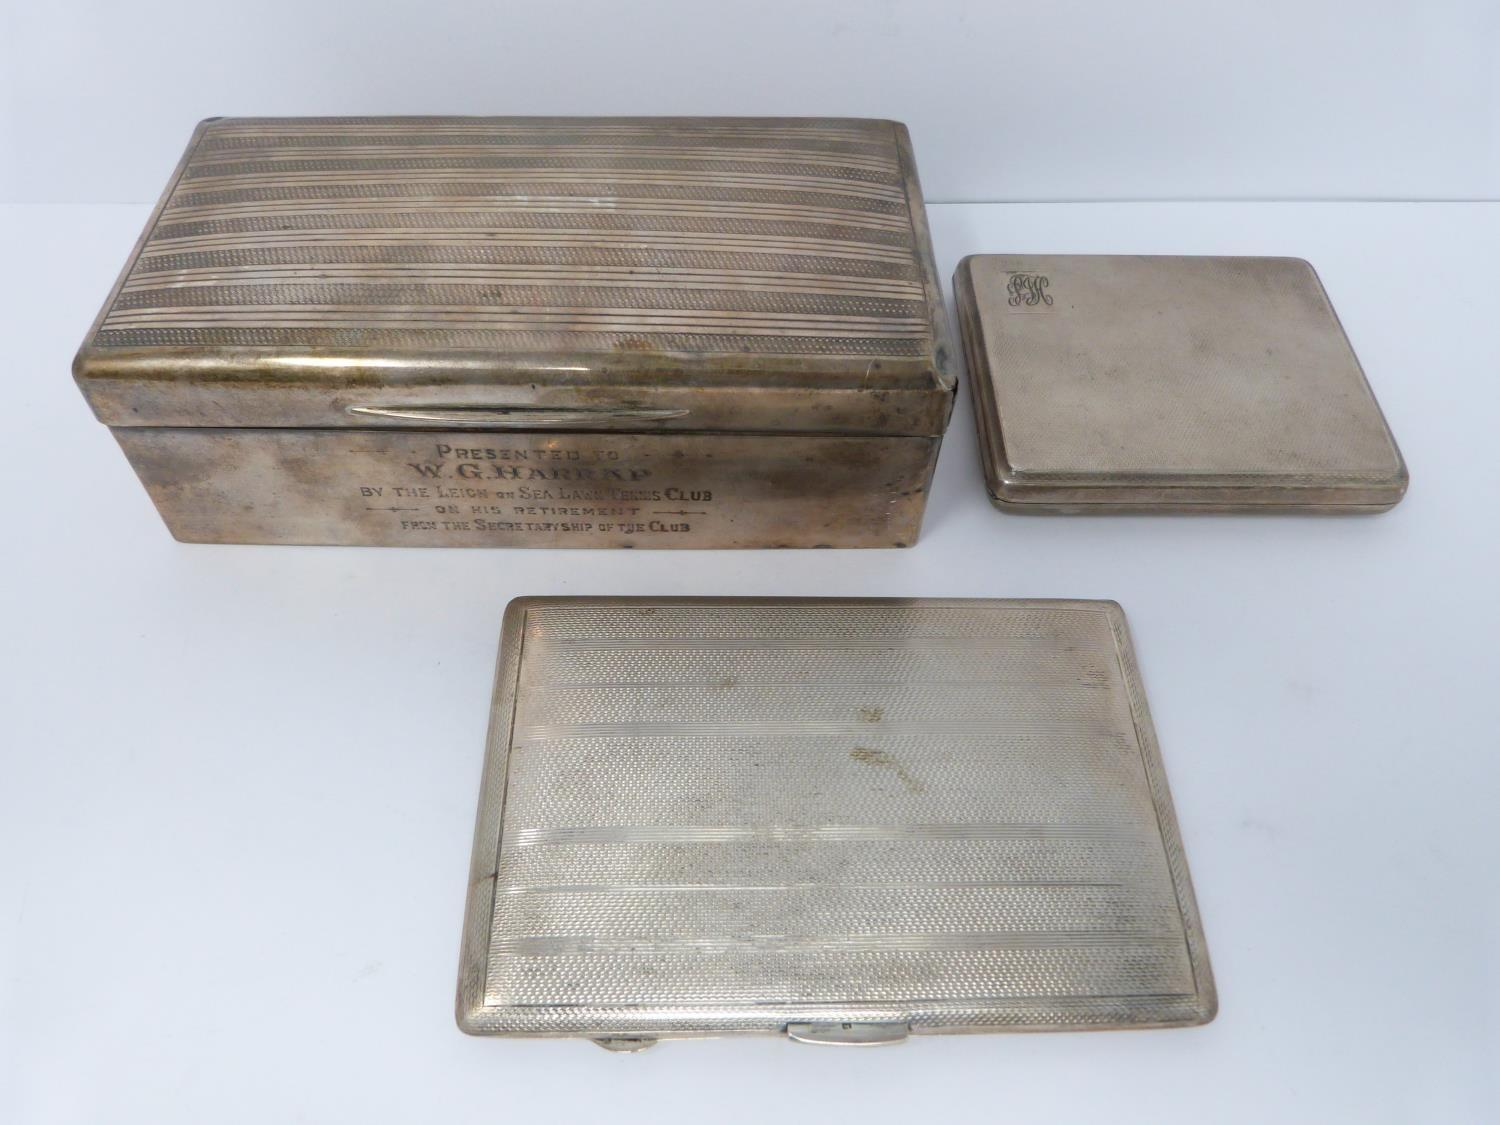 Two silver cigarette cases and a silver cigarette box, rectangular engine turned decoration case,